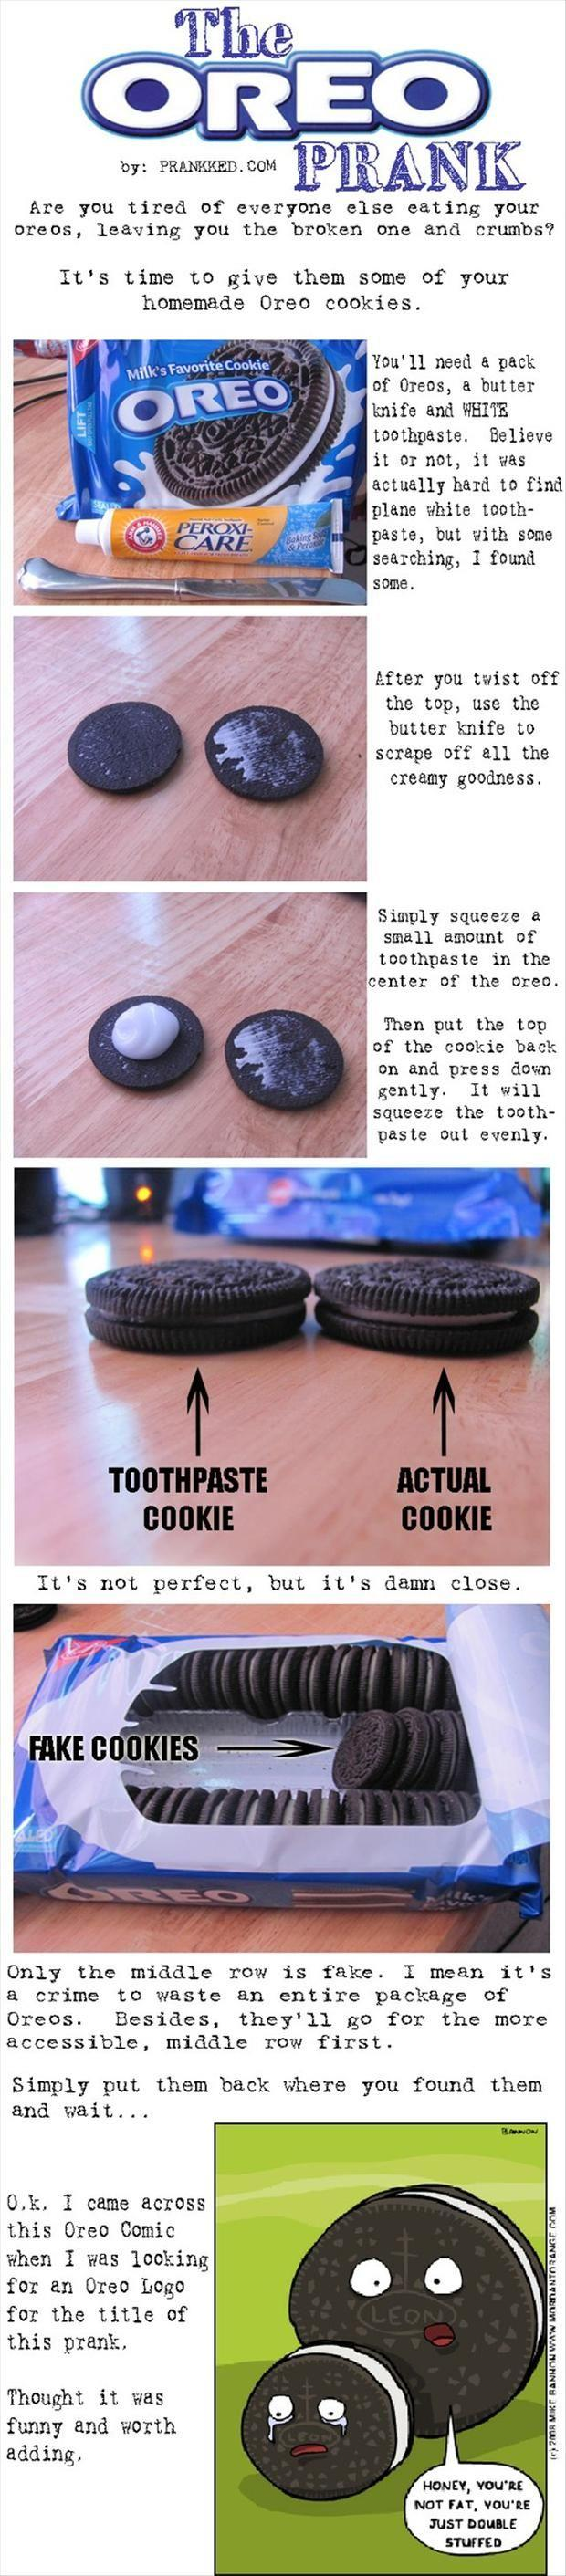 the oreo april fools day prank